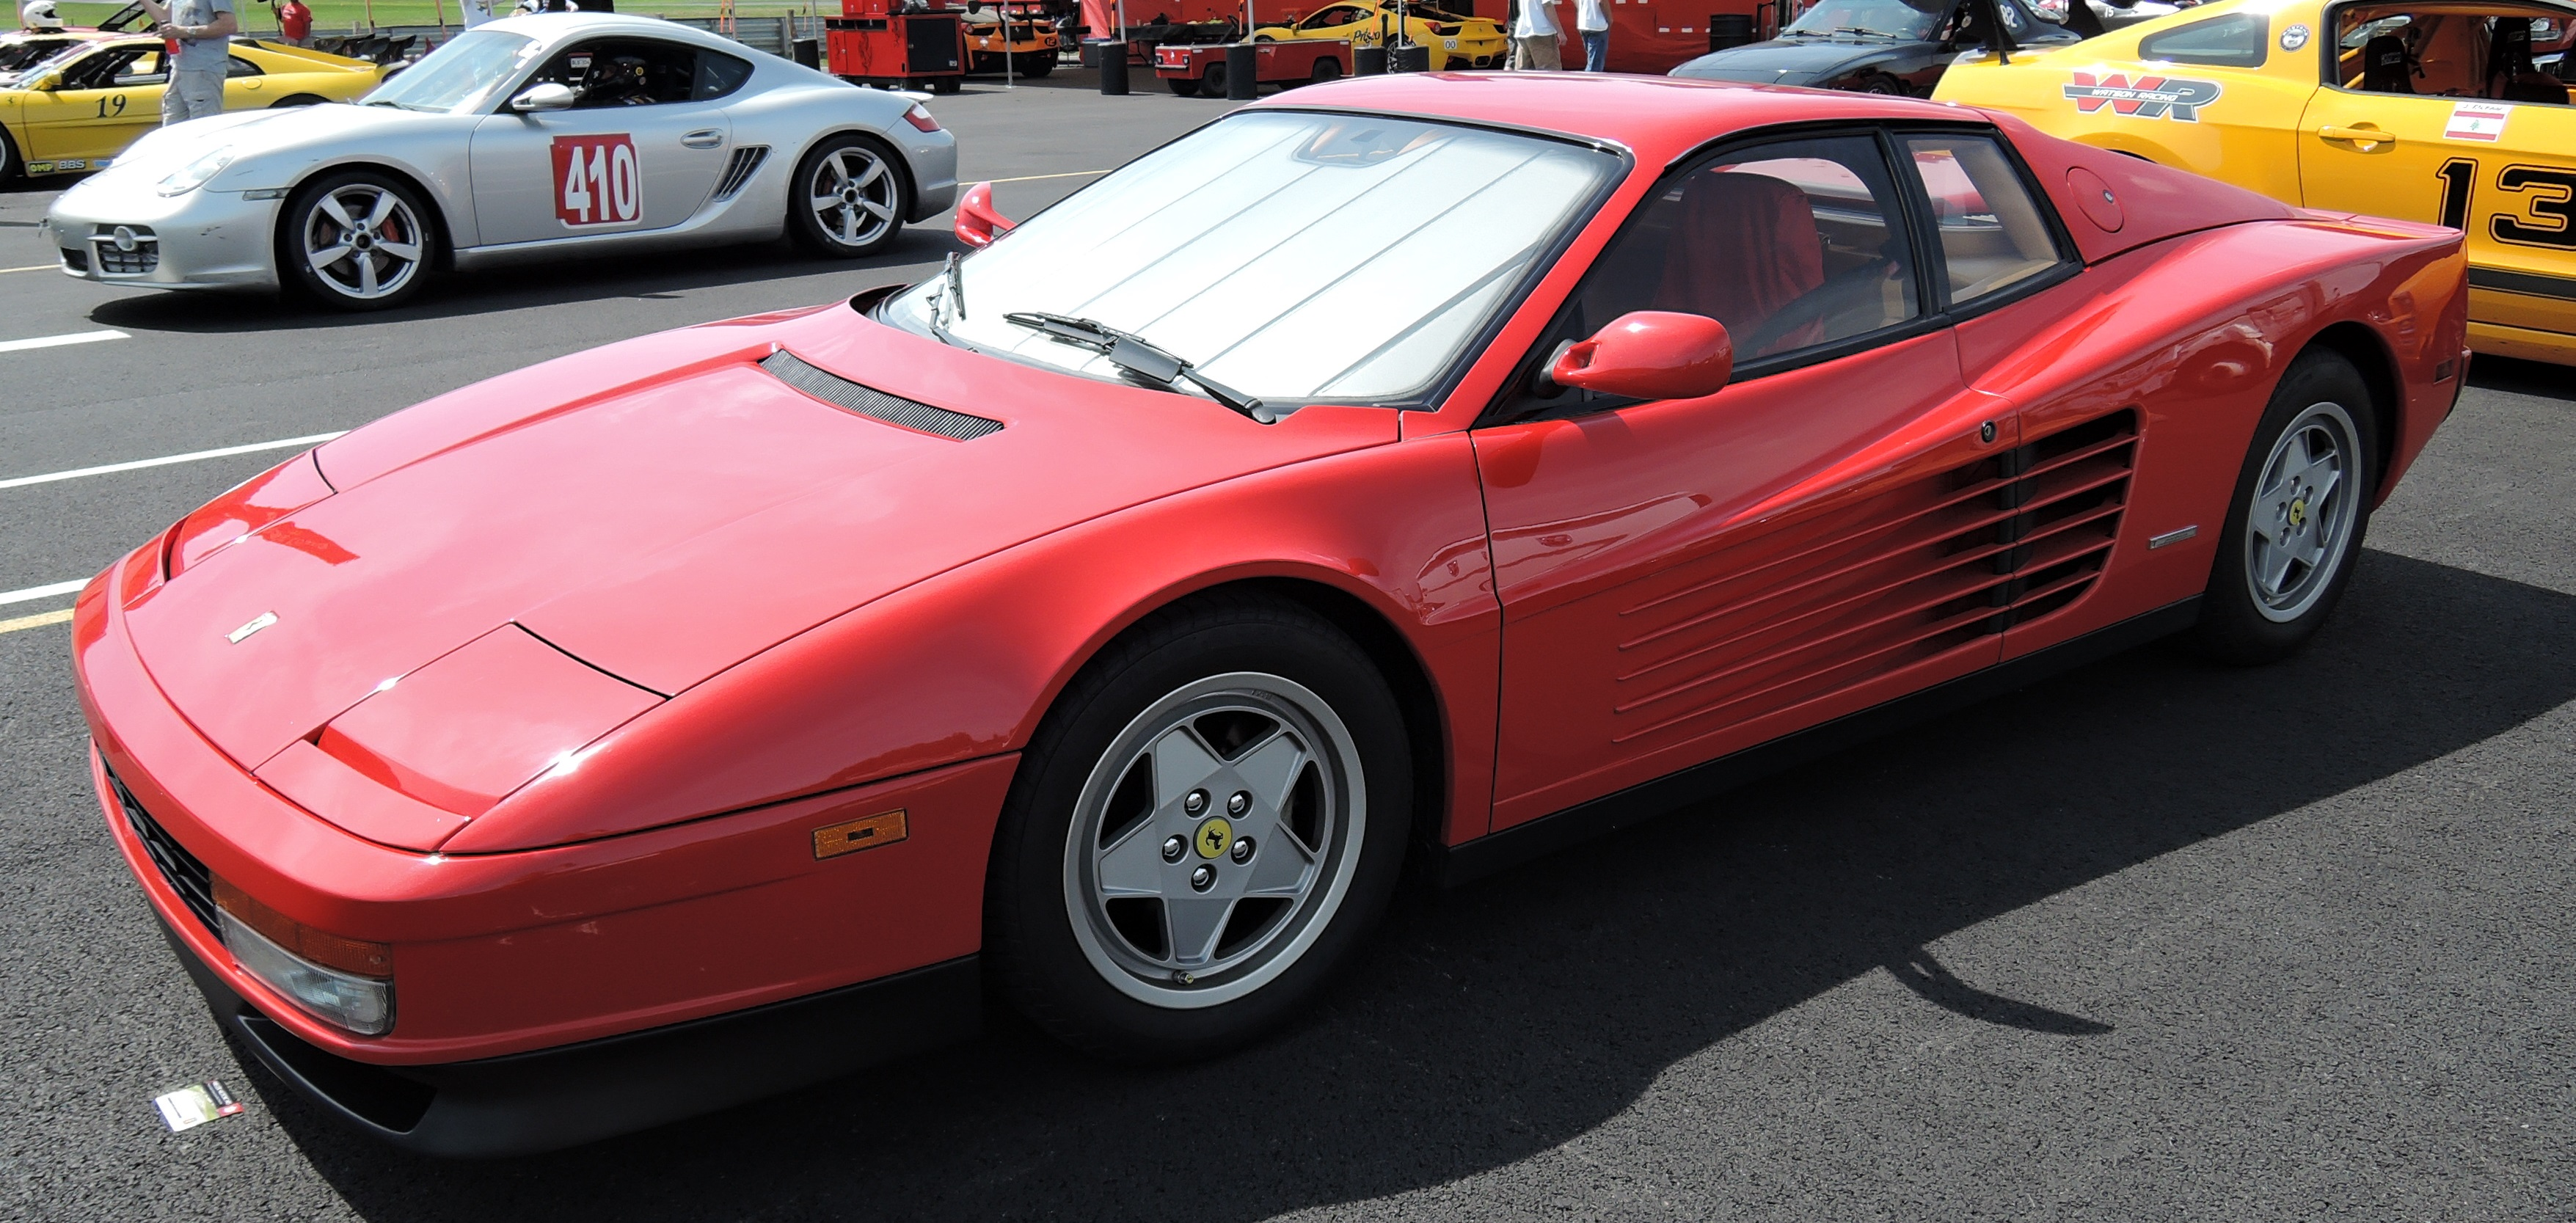 red Ferrari Testarossa - lime rock park